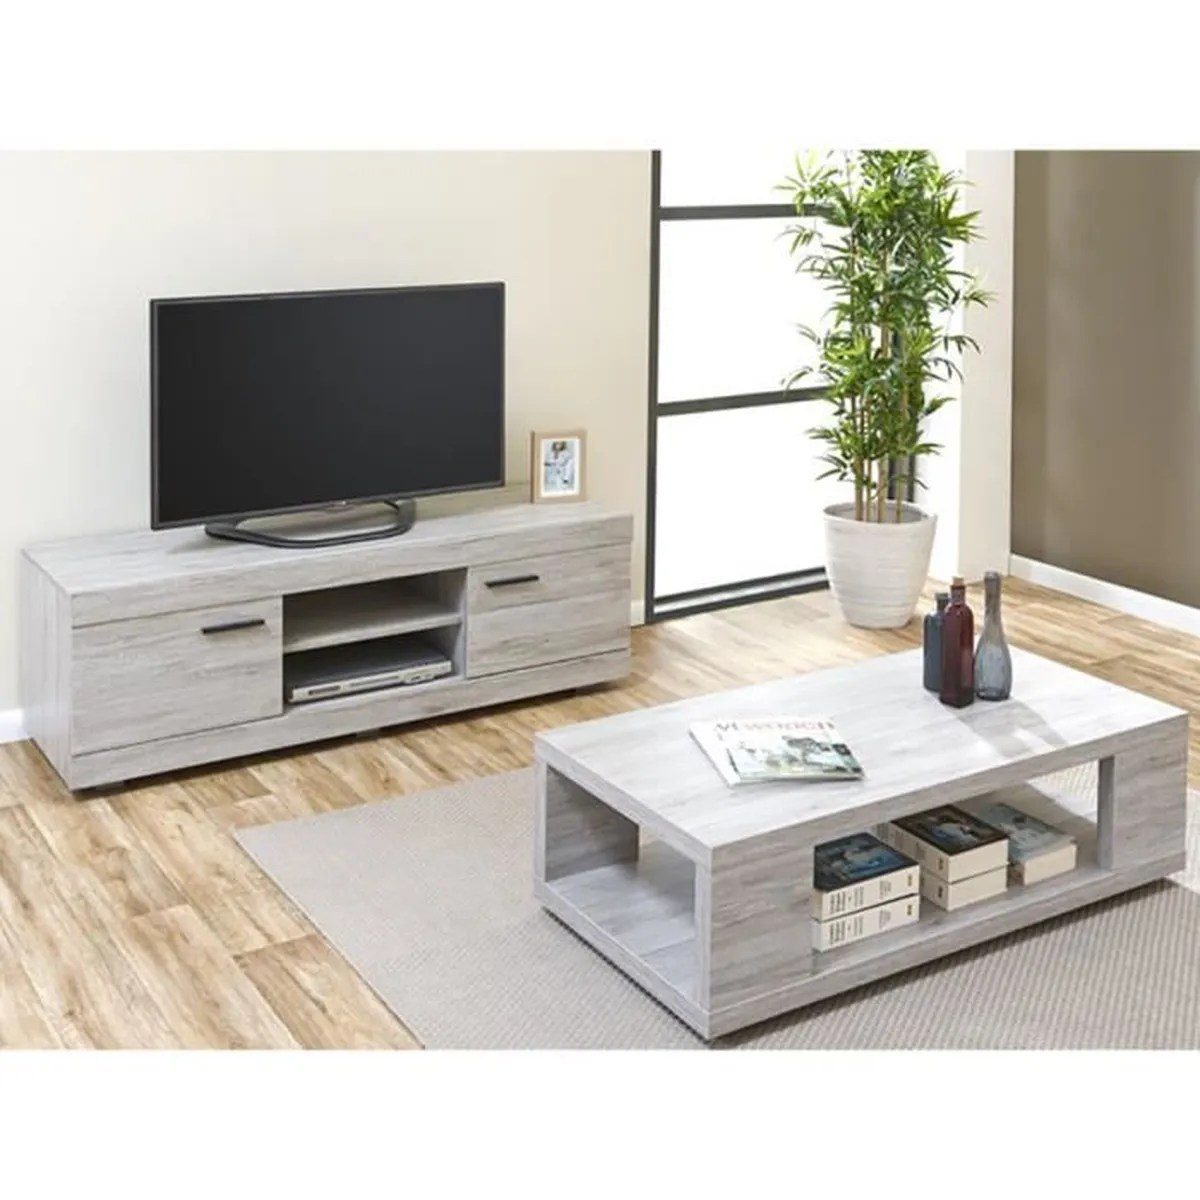 Ensemble Meuble Tv Buffet Tom - Ensemble Table Basse + Meuble Tv Gris - Achat